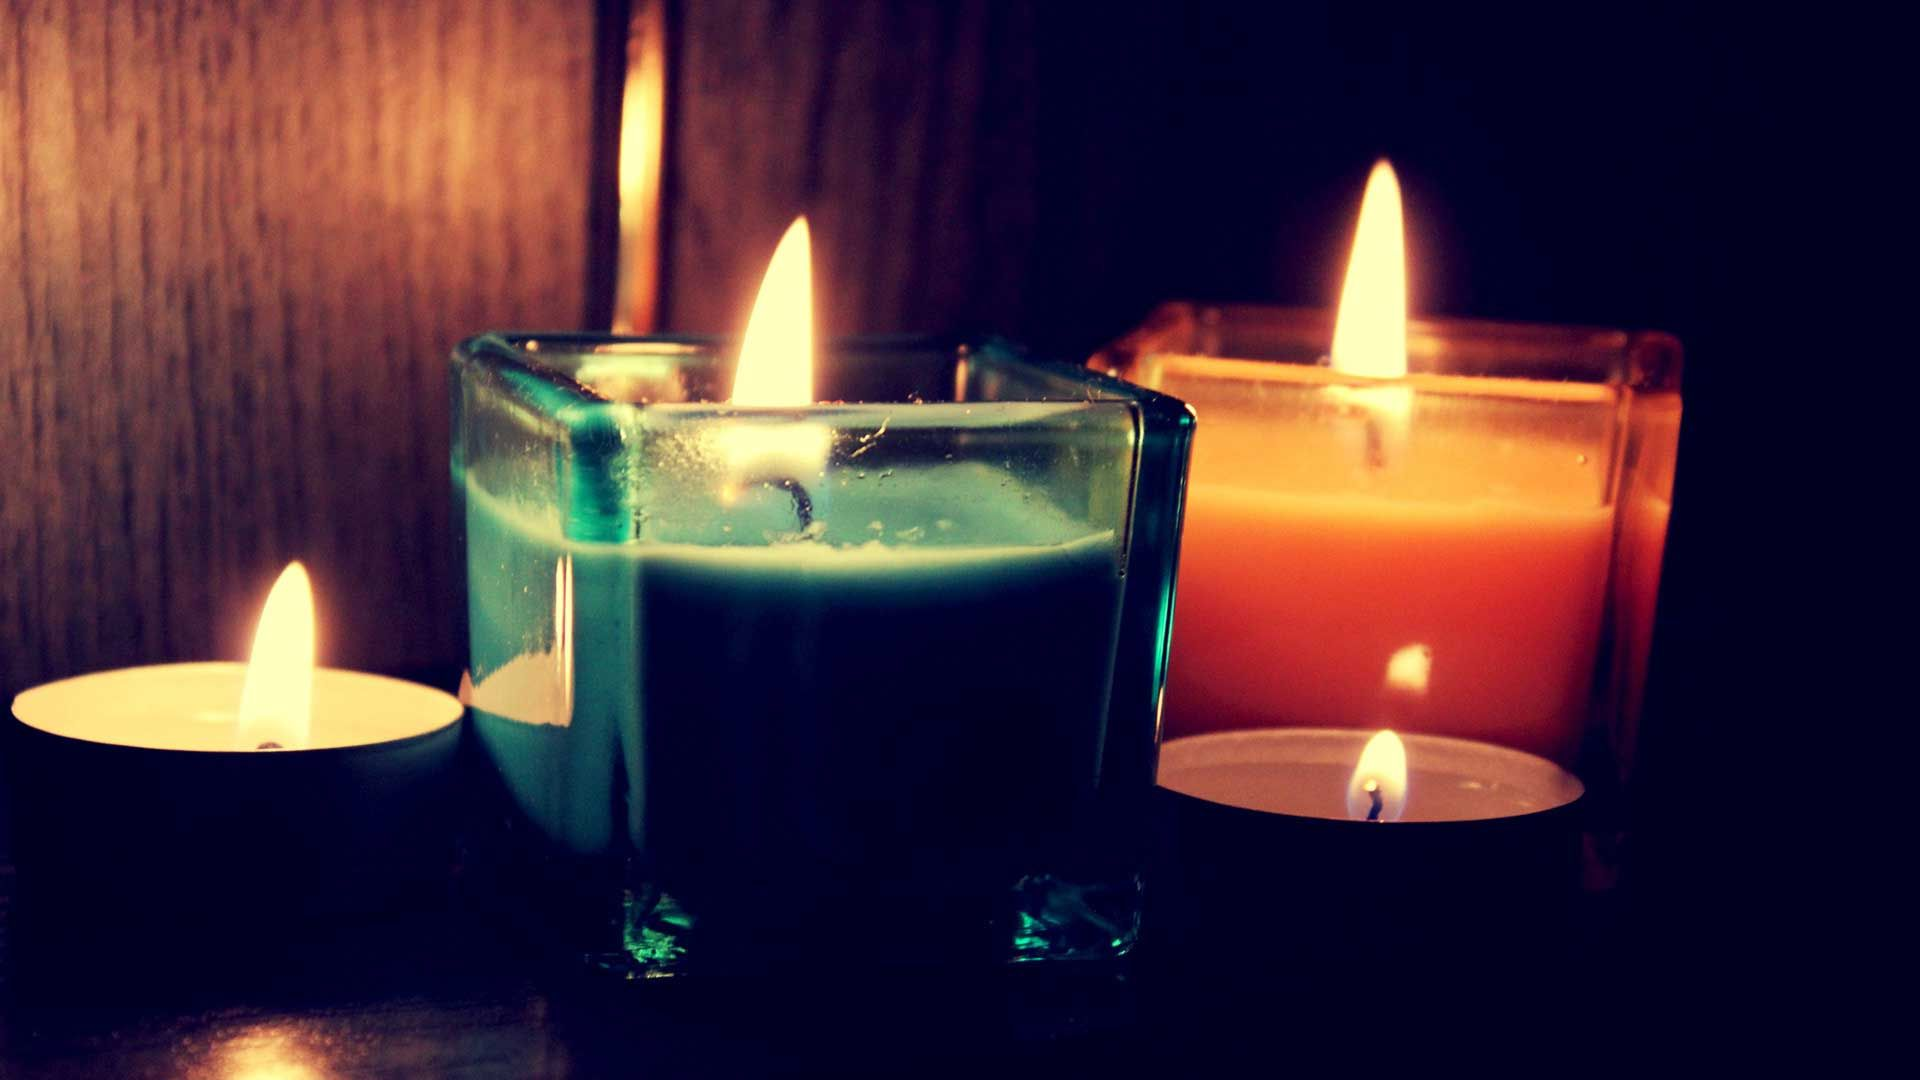 Candle wallpaper image hd